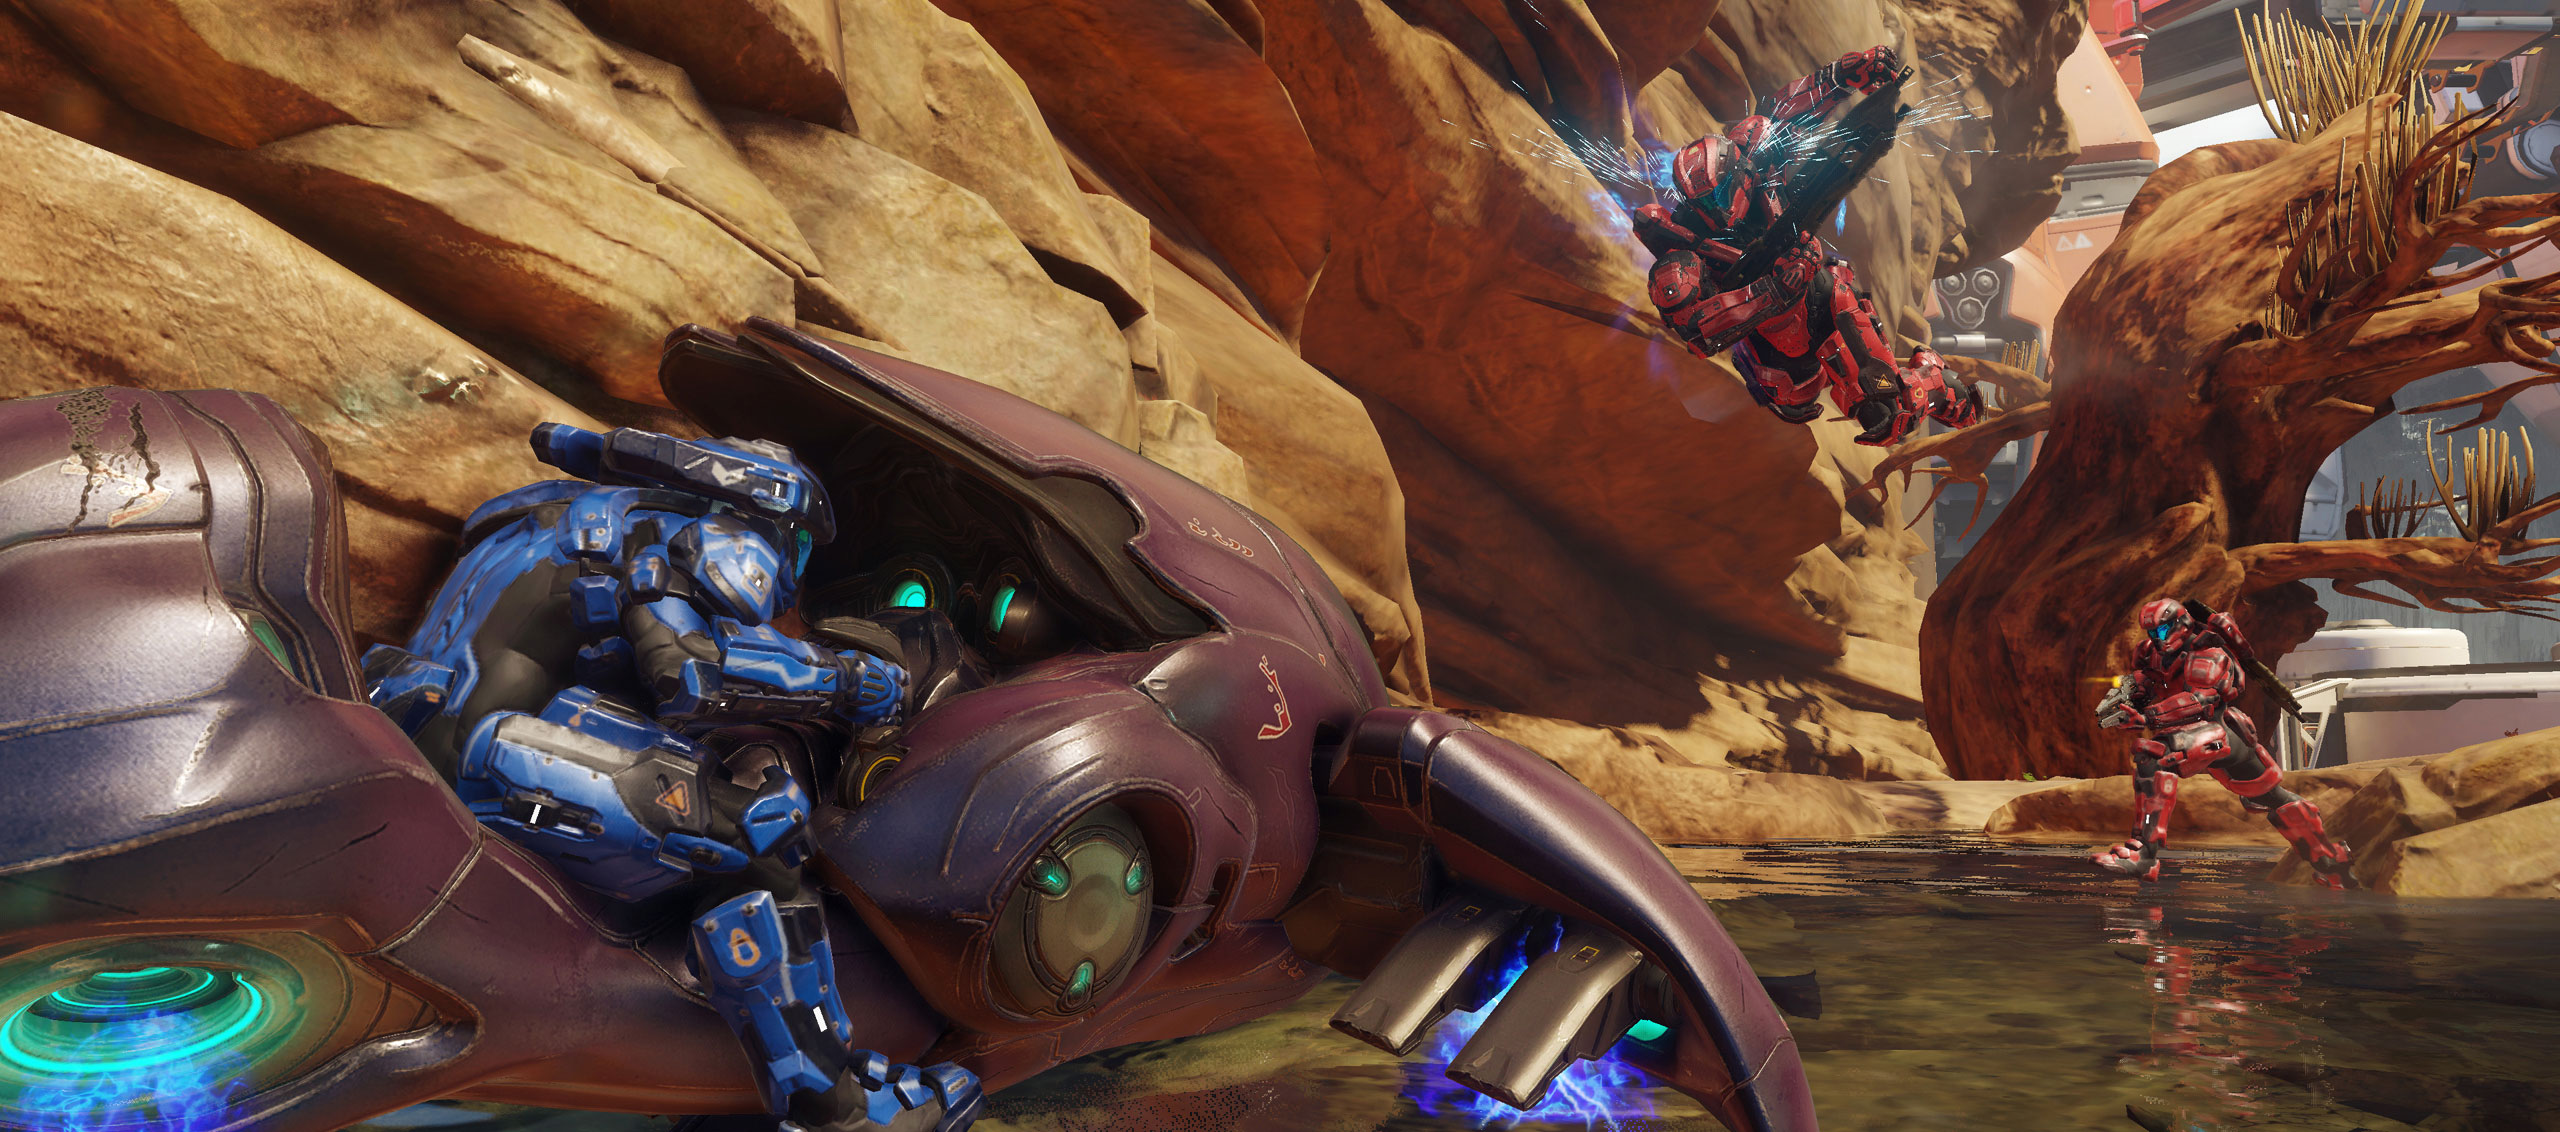 halo 5 interview screen 3